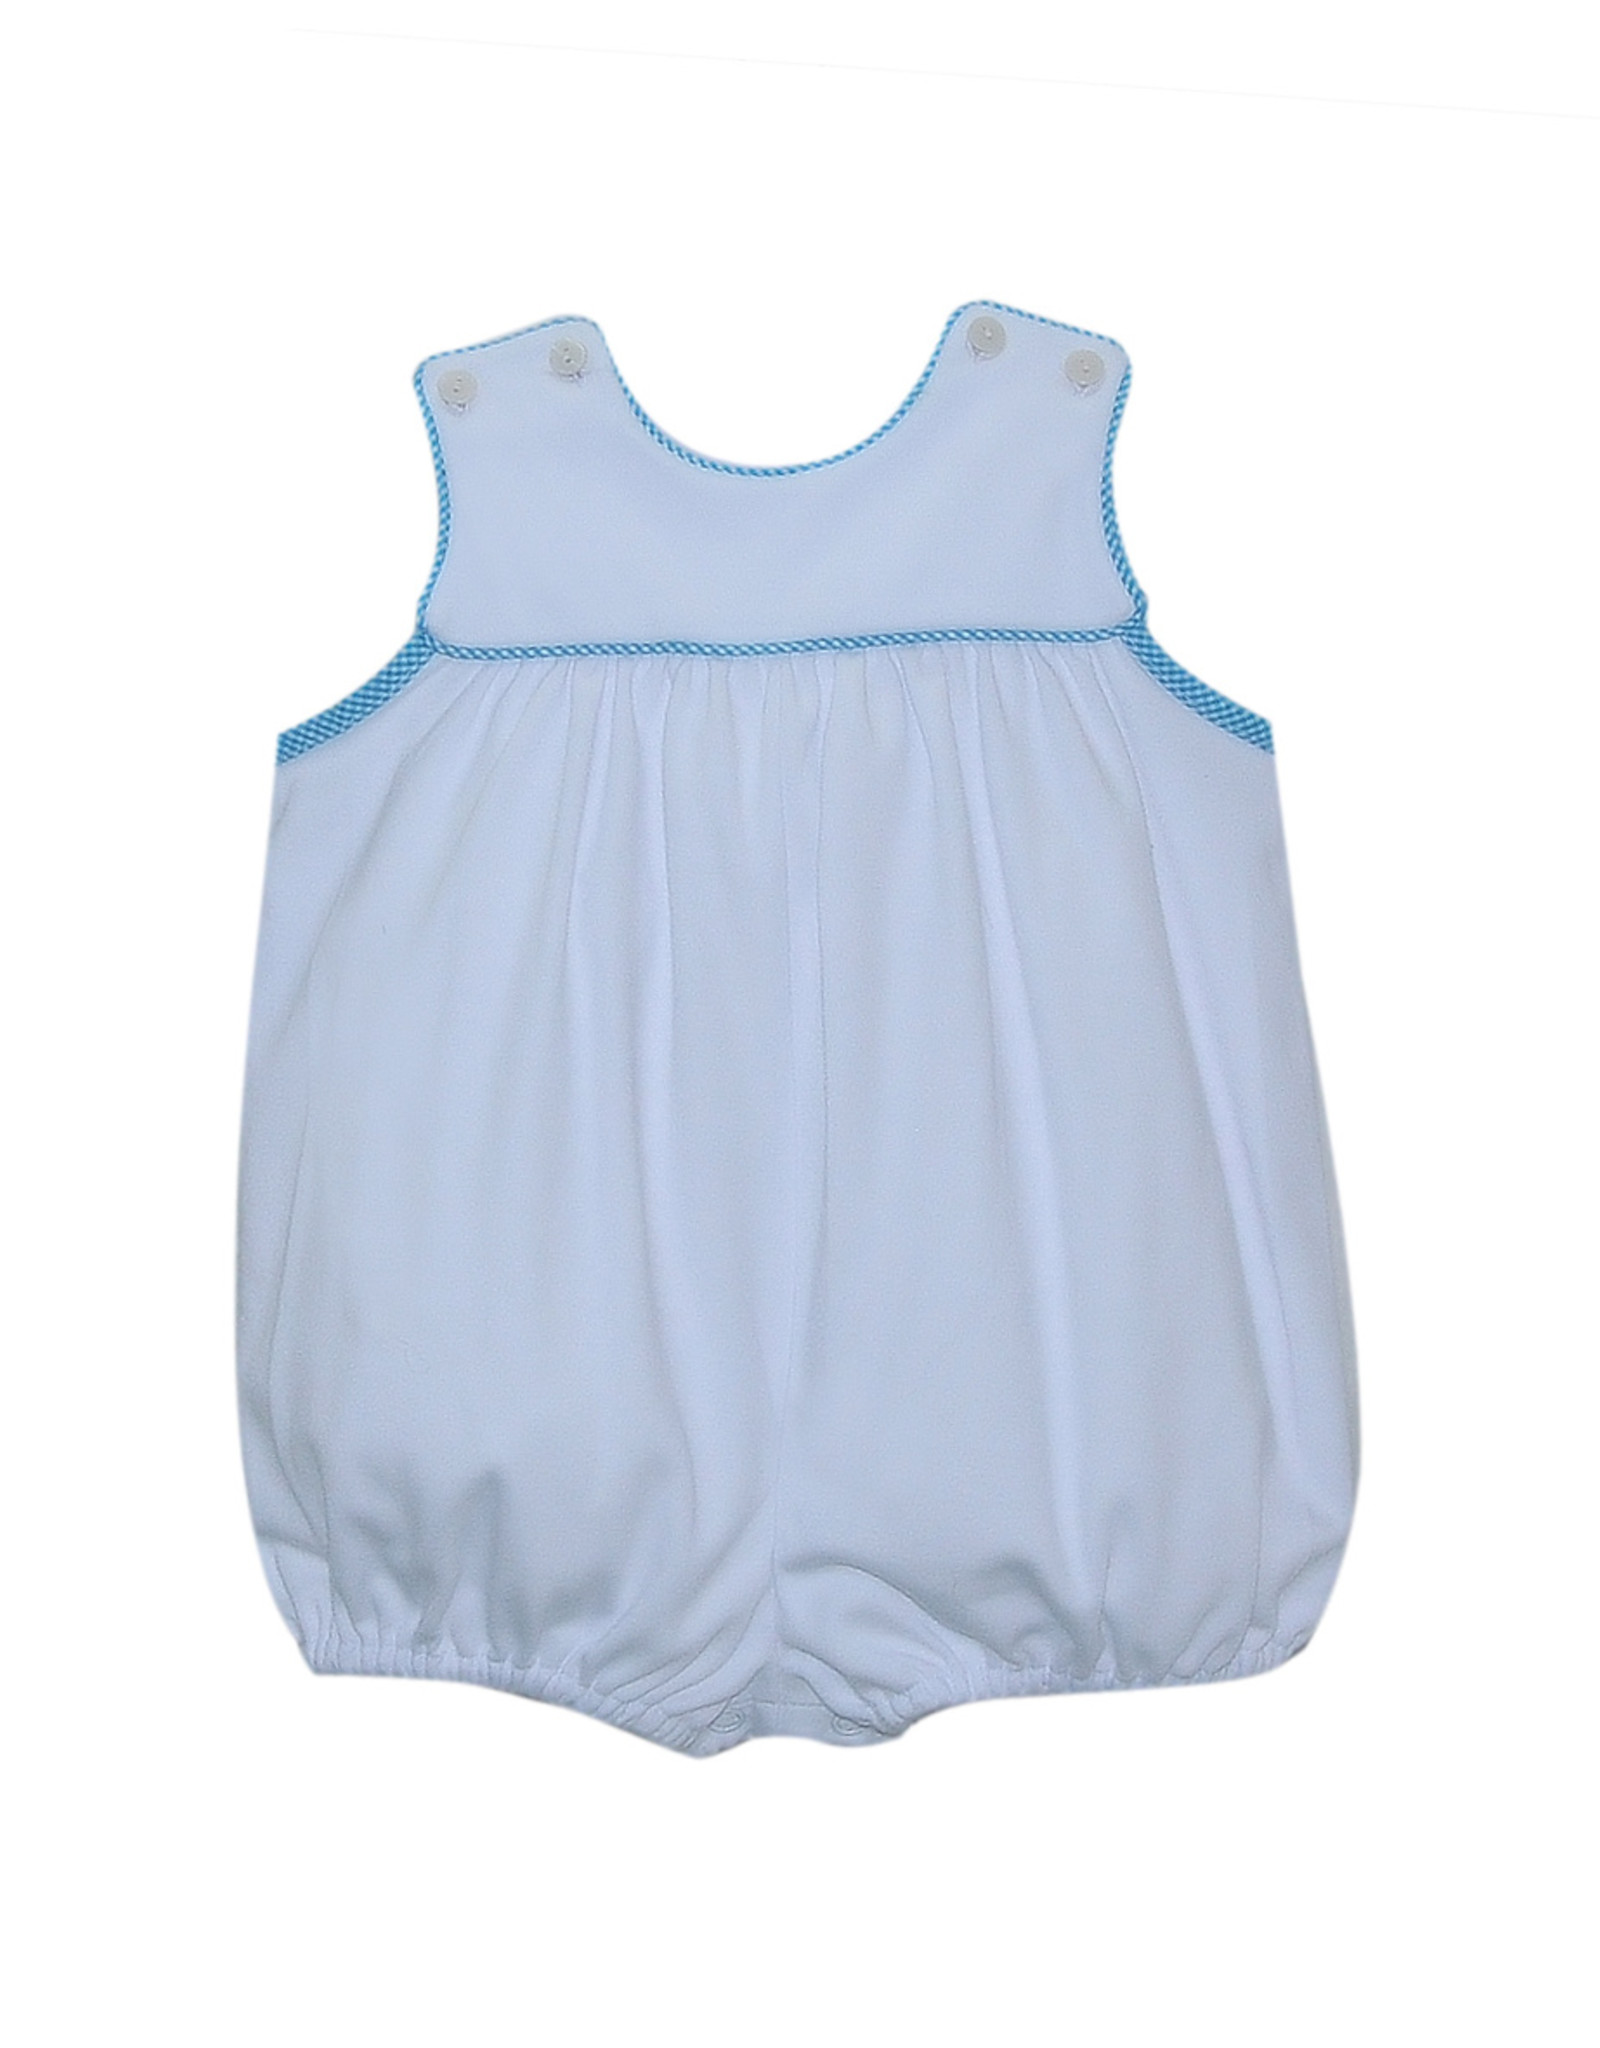 LullabySet Taylor White Bubble With Teal Trim